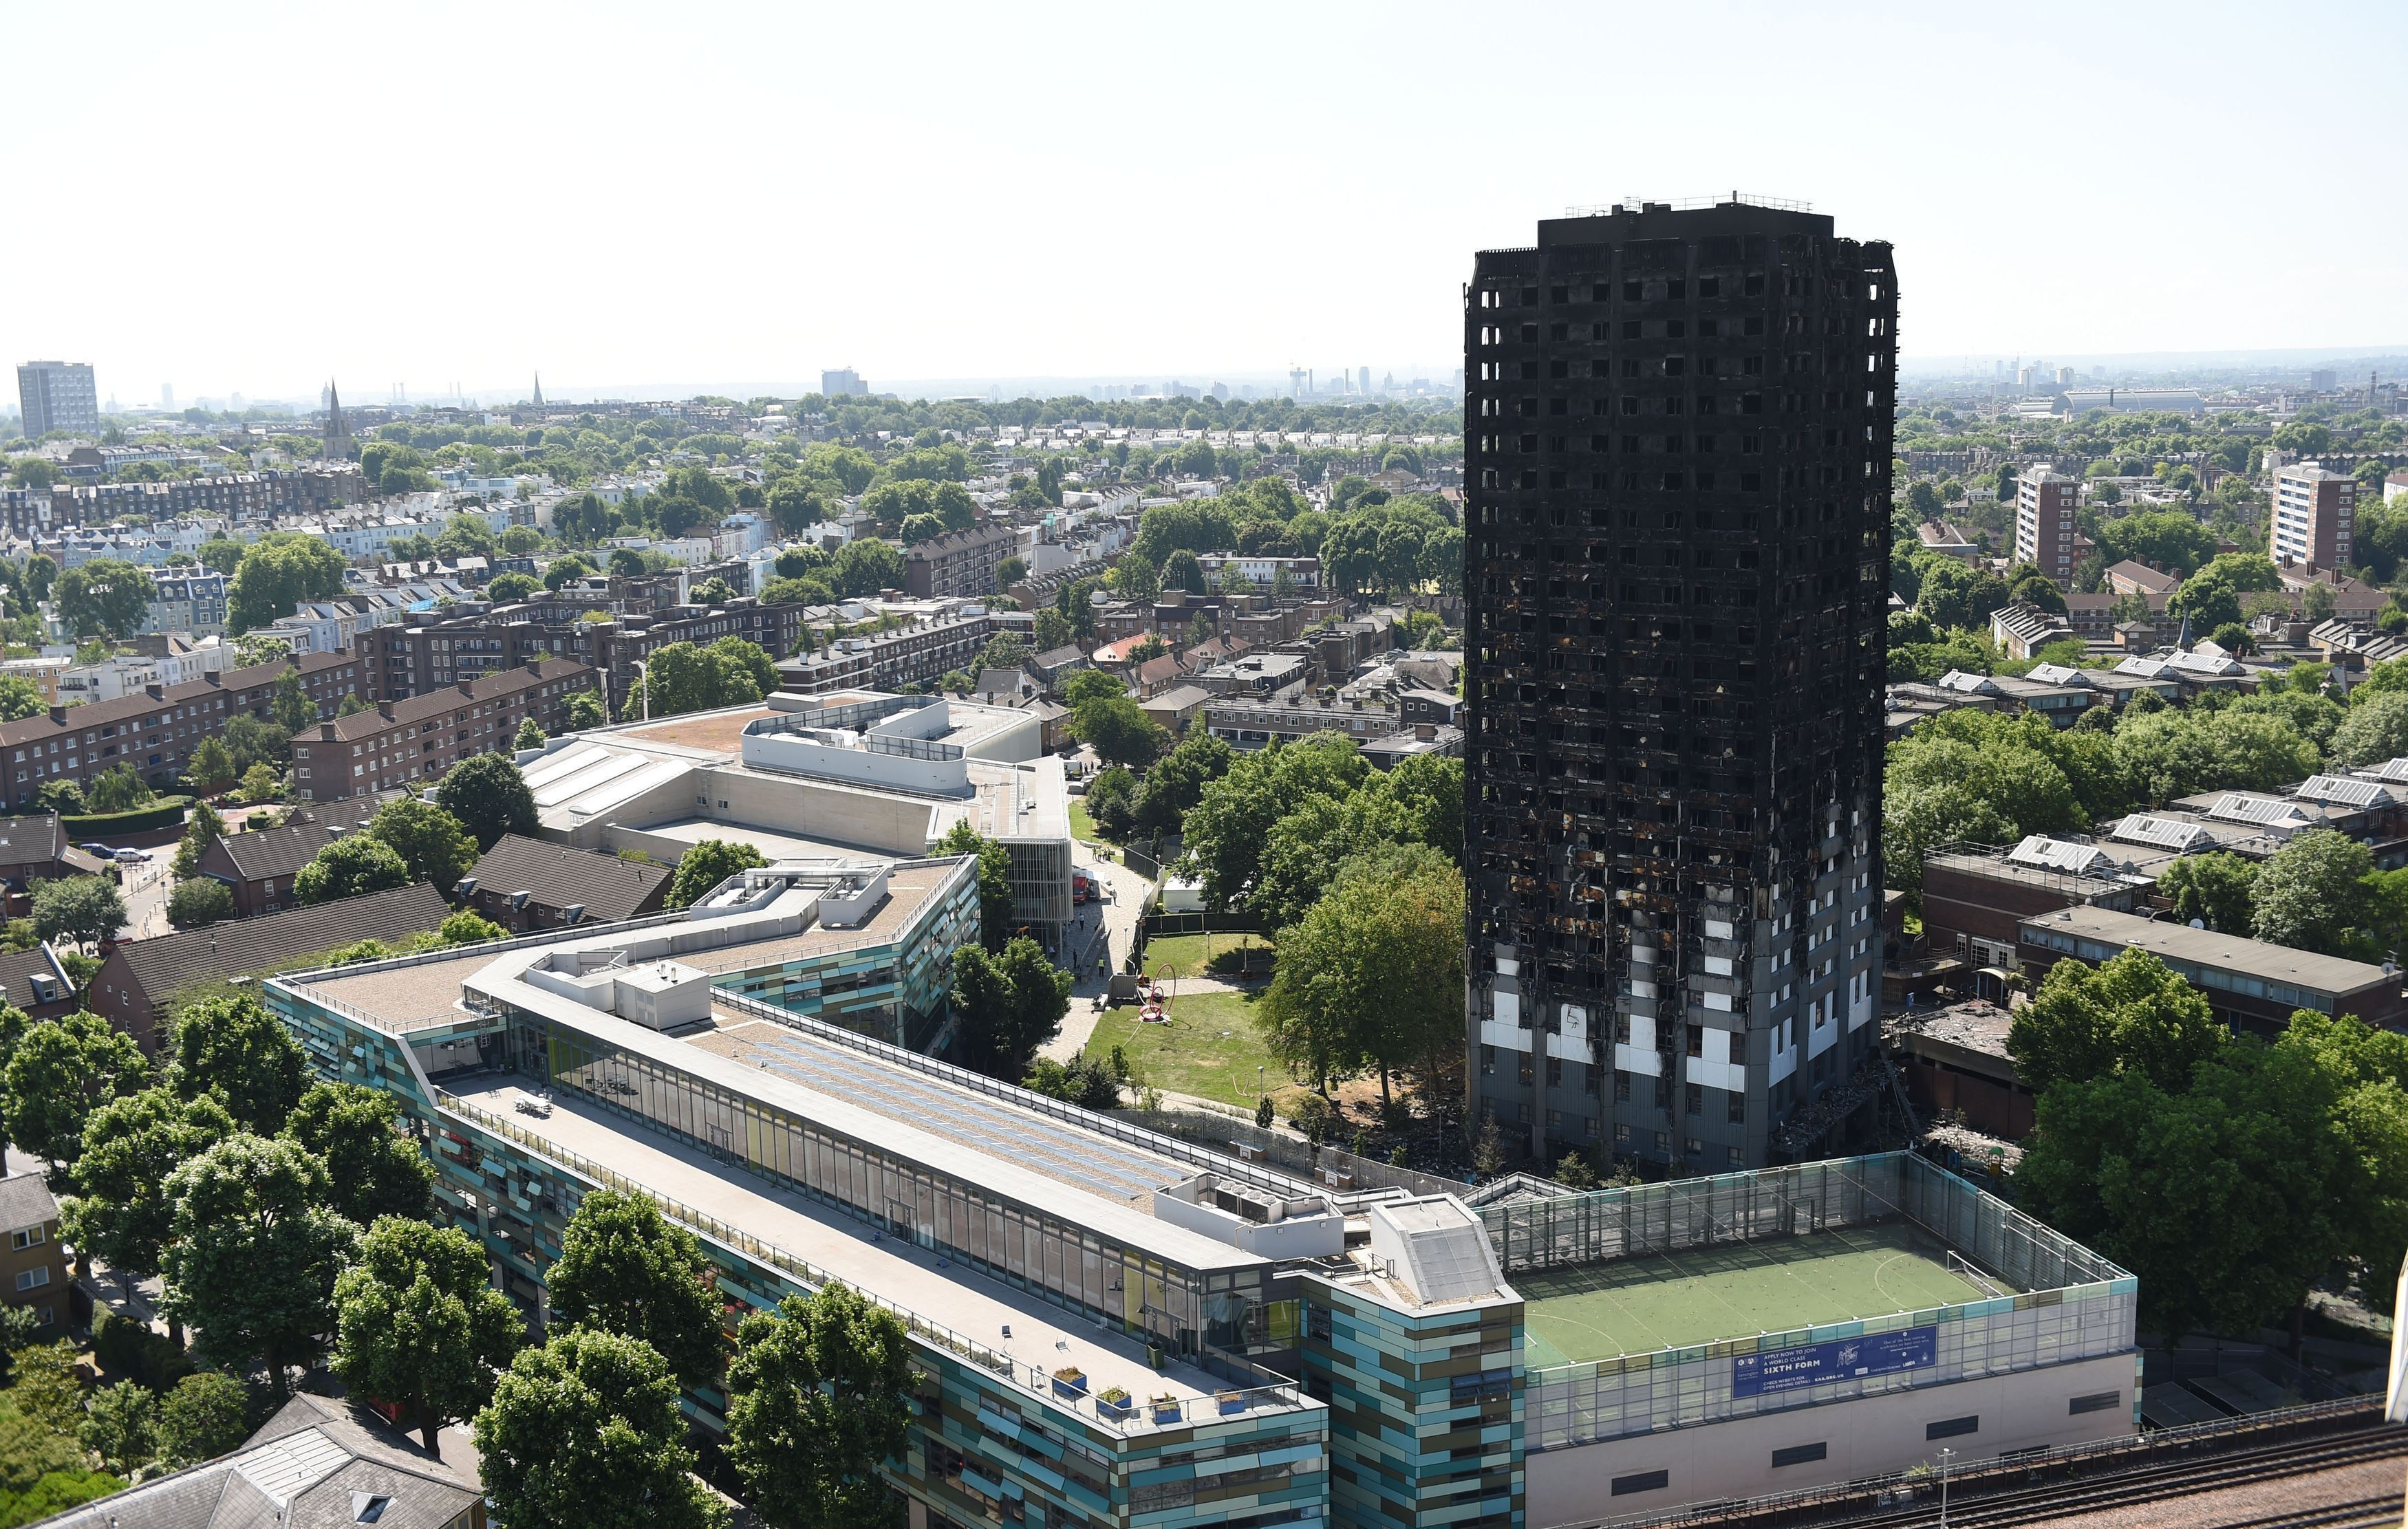 For Grenfell Survivors, Another Terrifying Injustice Awaits